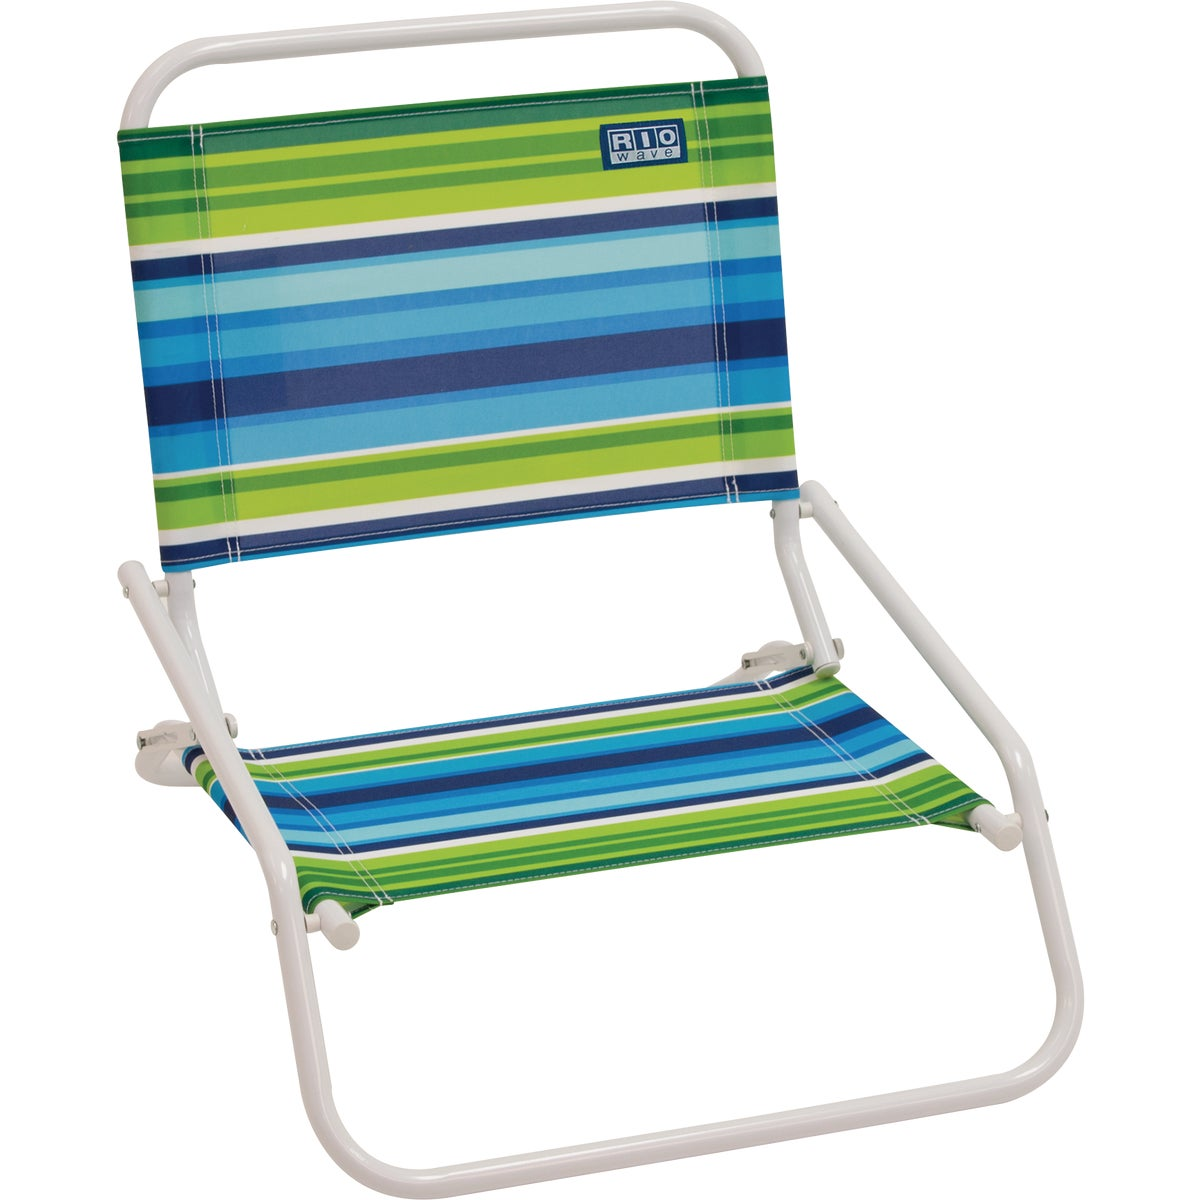 ALOHA BEACH CHAIR - SC580-1305 by Rio Brands  Ningbo1